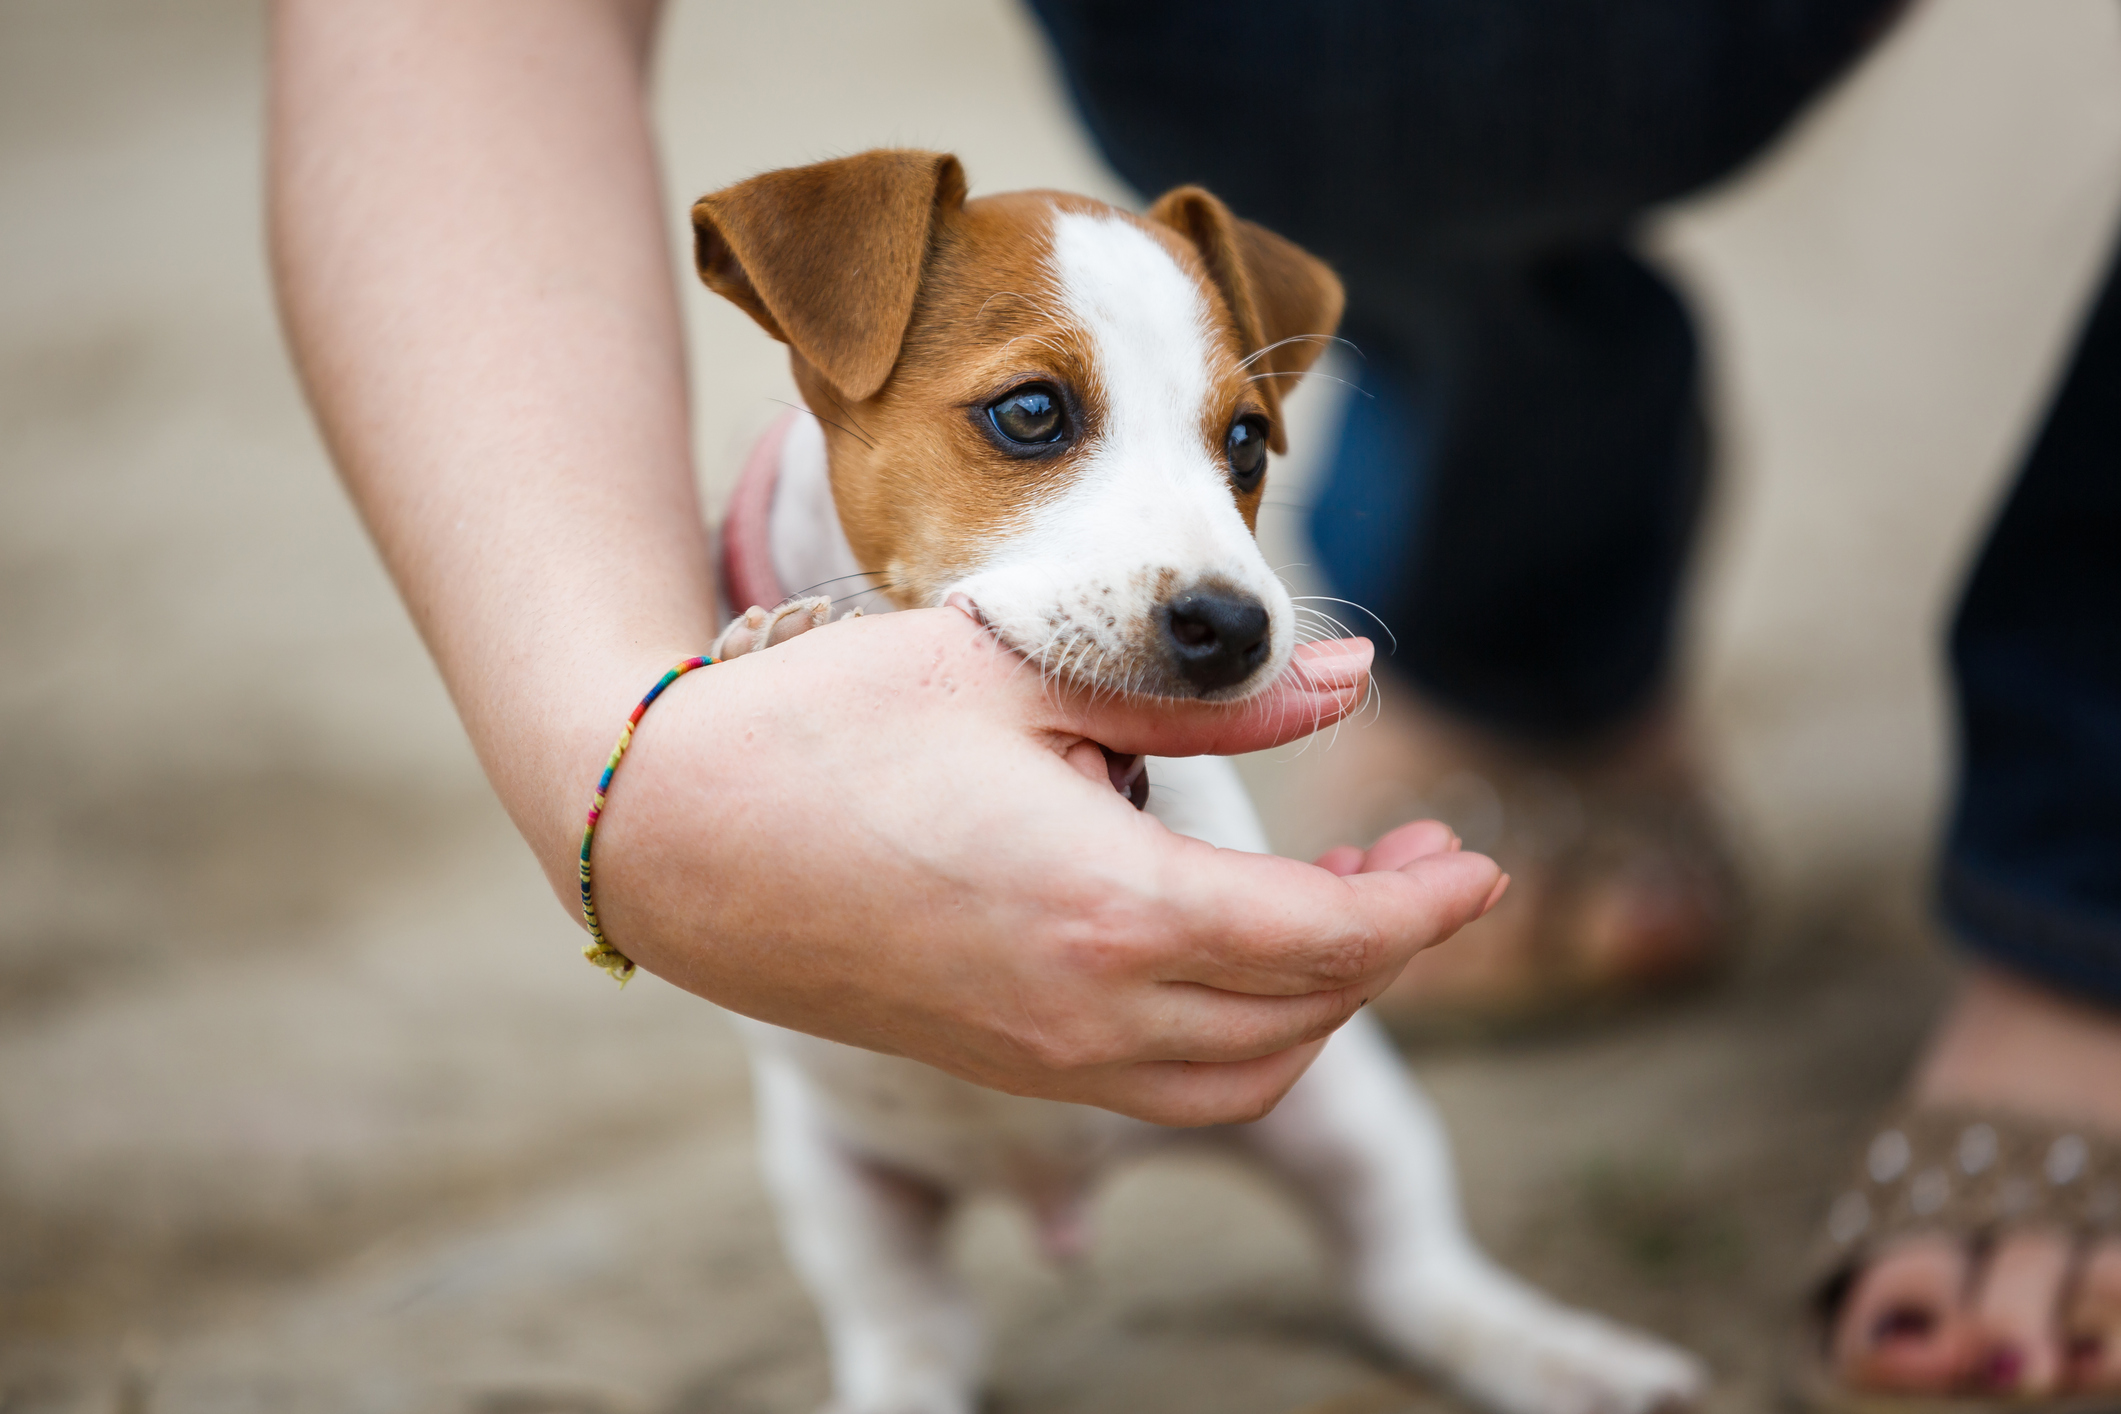 Puppy Training in Los Angeles: Train A Puppy Not To Bite With The Best Dog Trainer In Los Angeles.